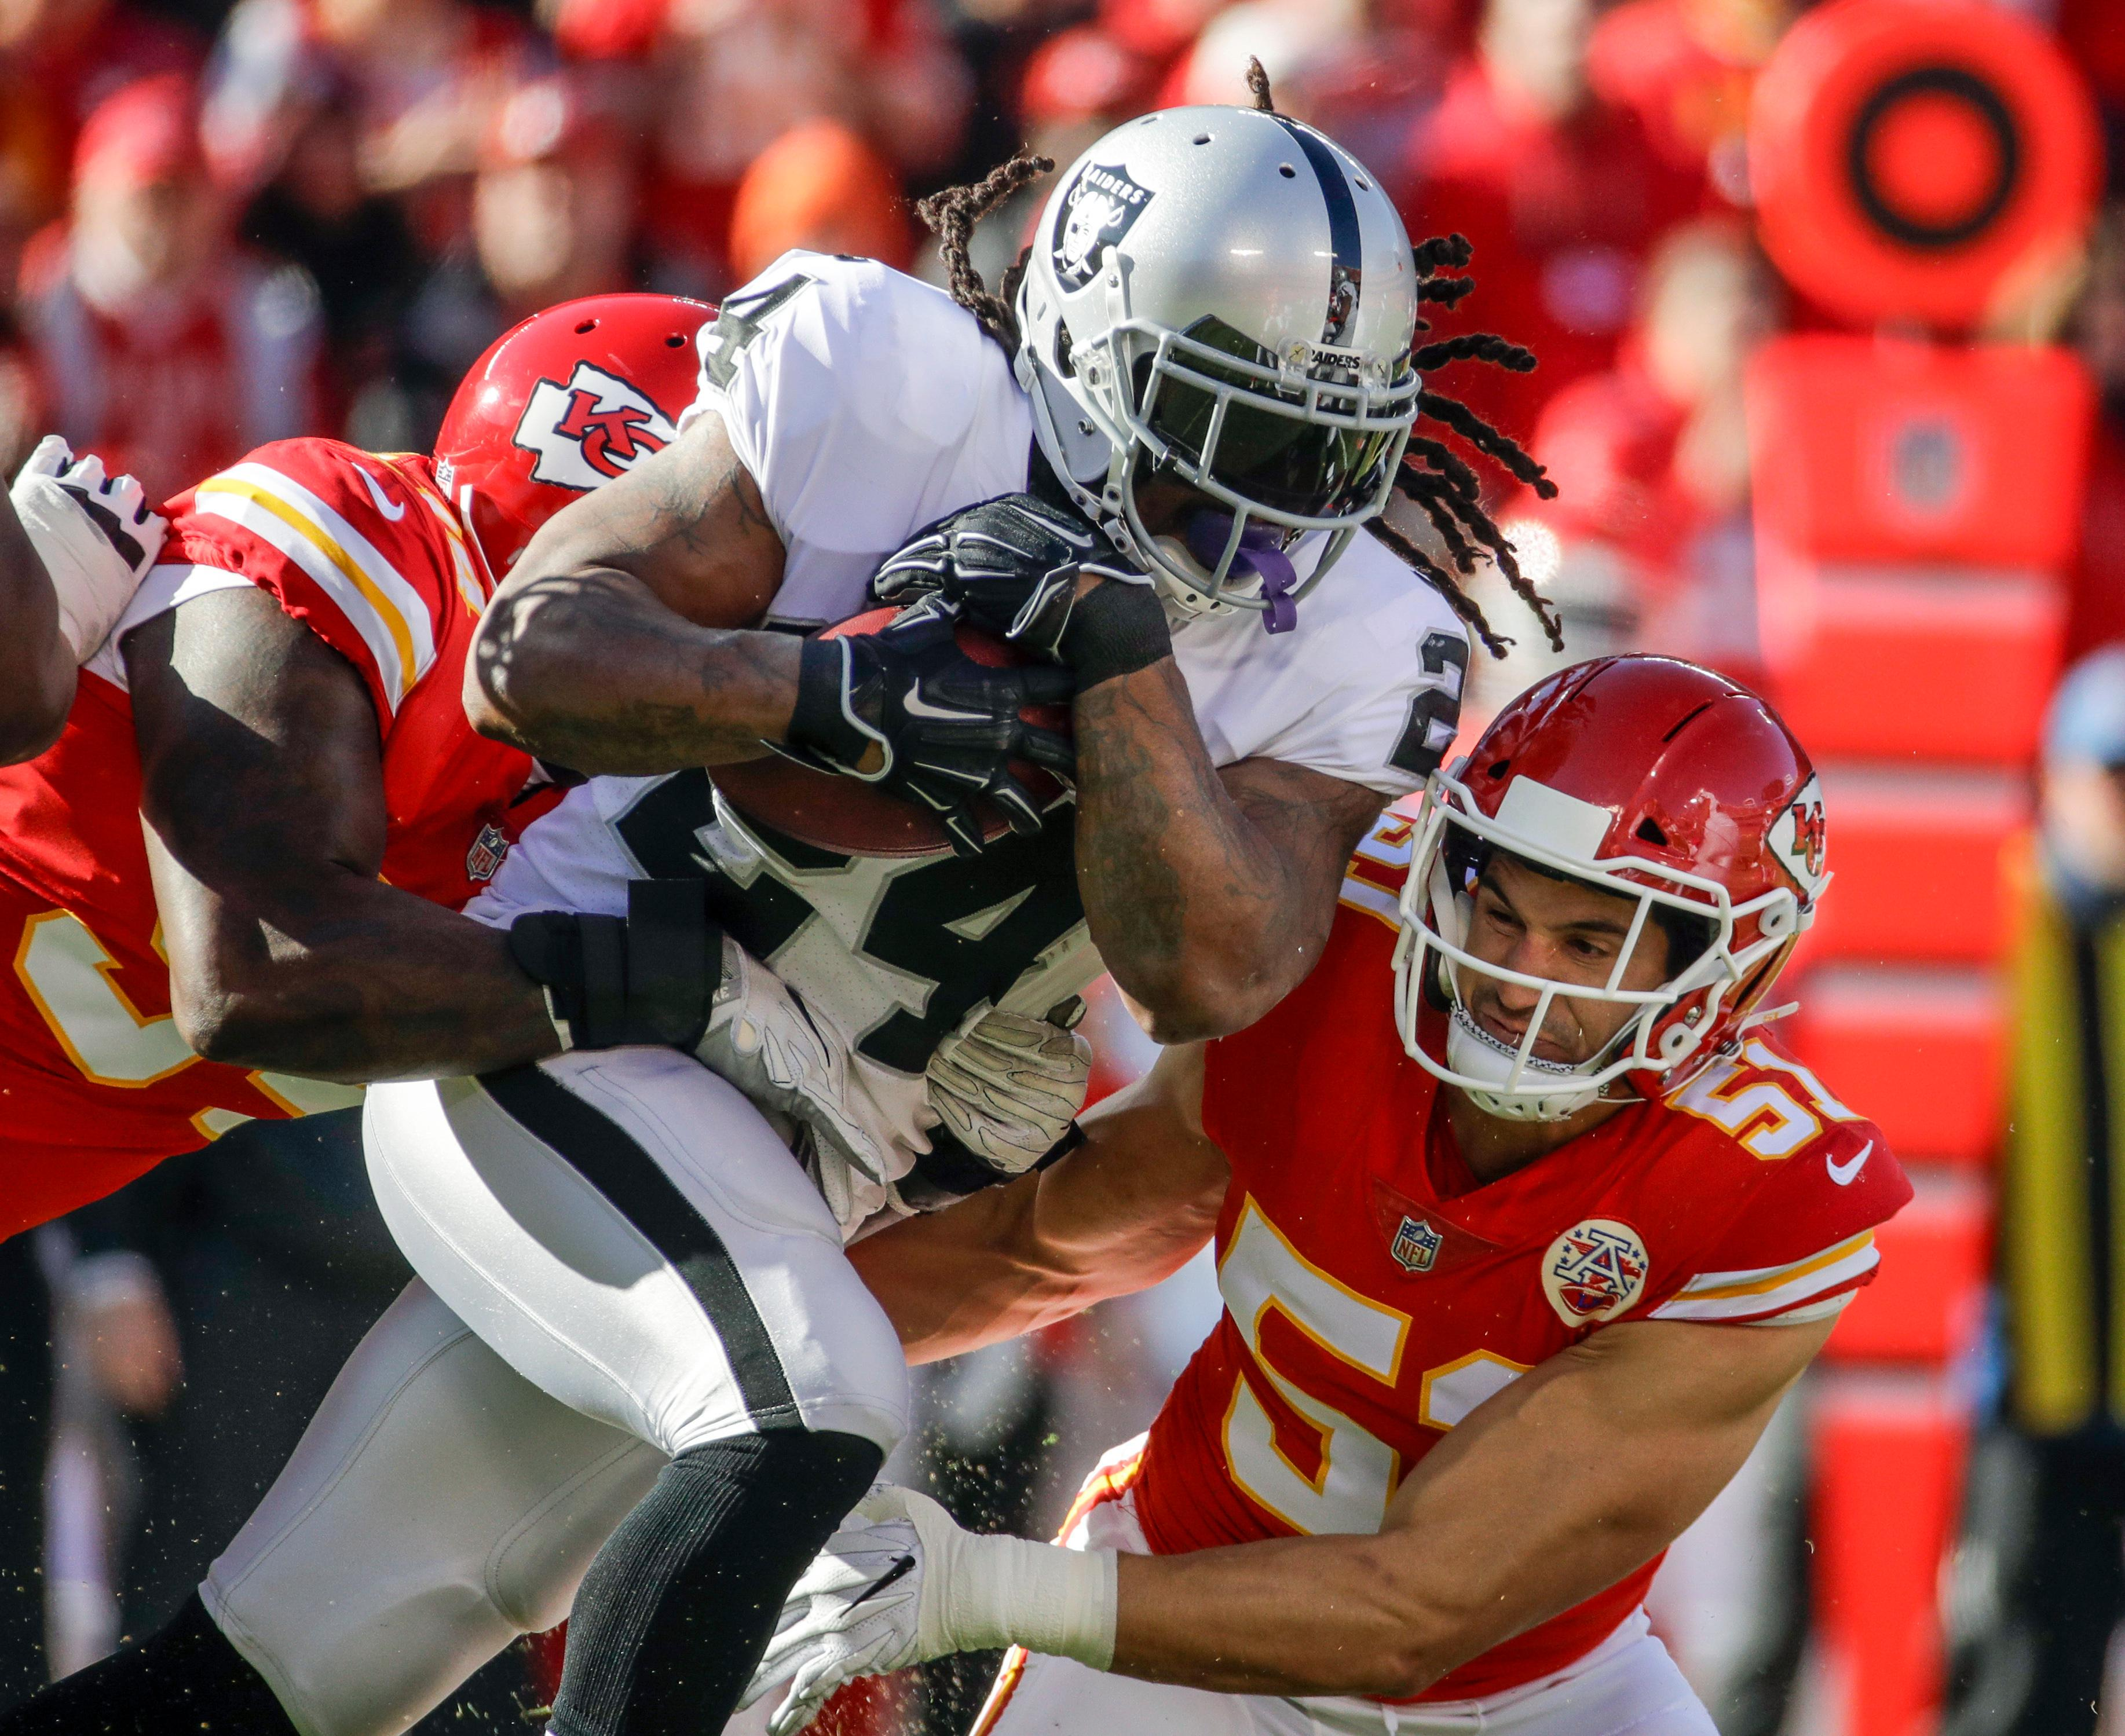 Oakland Raiders running back Marshawn Lynch (24) is tackled by Kansas City Chiefs linebacker Frank Zombo (51) and defensive lineman Jarvis Jenkins (94) during the first half of an NFL football game in Kansas City, Mo., Sunday, Dec. 10, 2017. (AP Photo/Charlie Riedel)